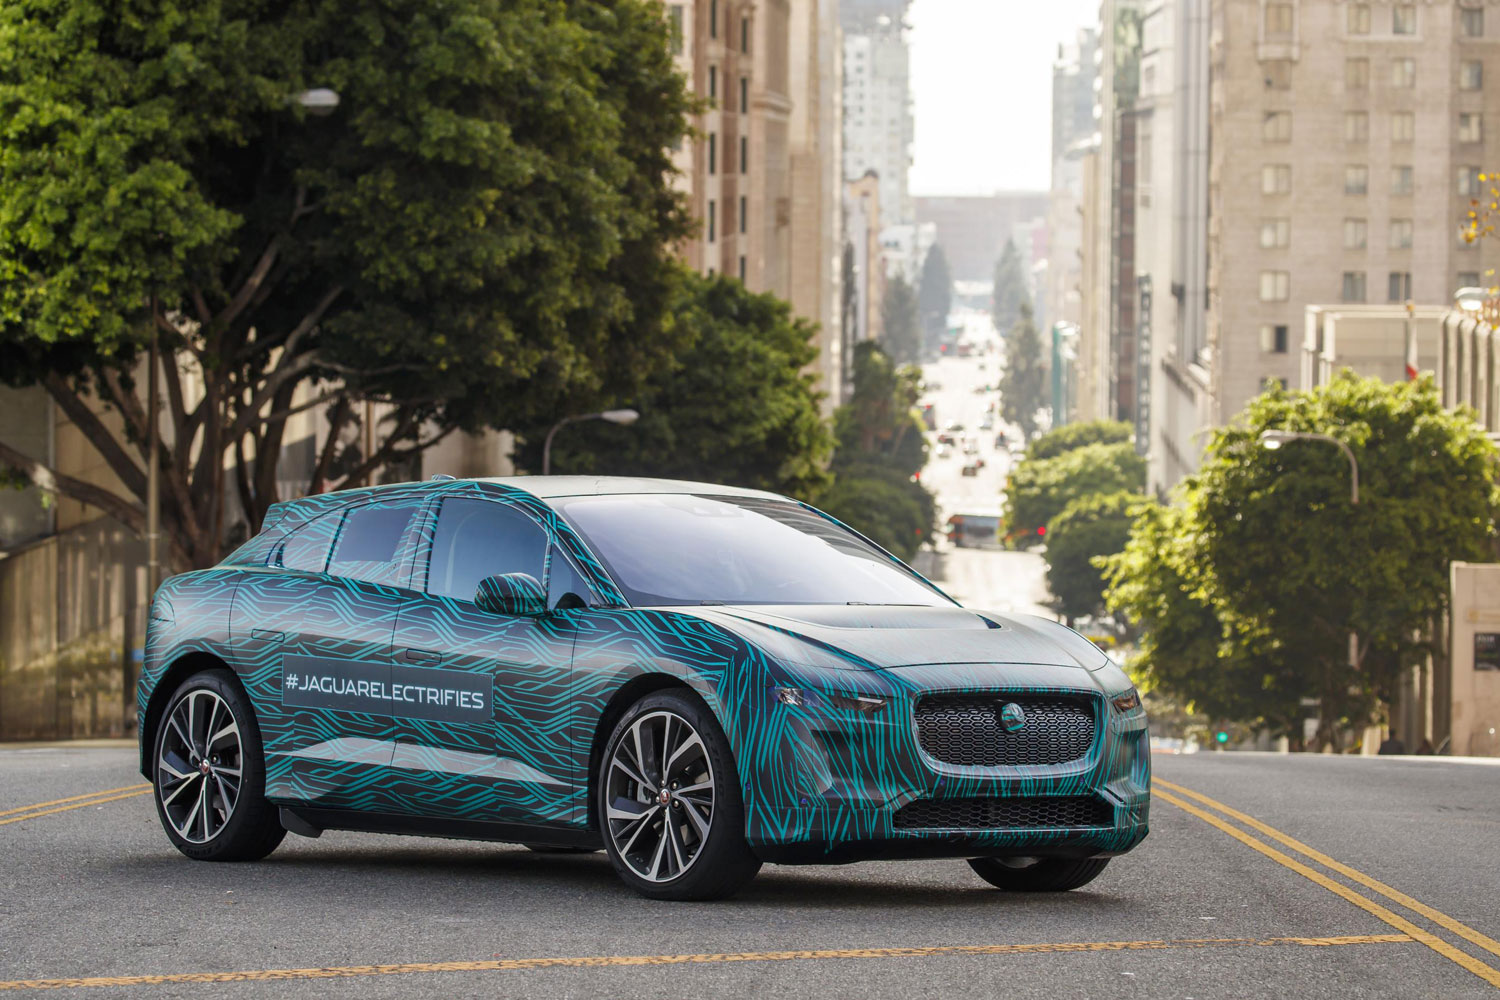 Jaguar I-PACE Enters Final Testing Ahead of Global Reveal in Early 2018 10